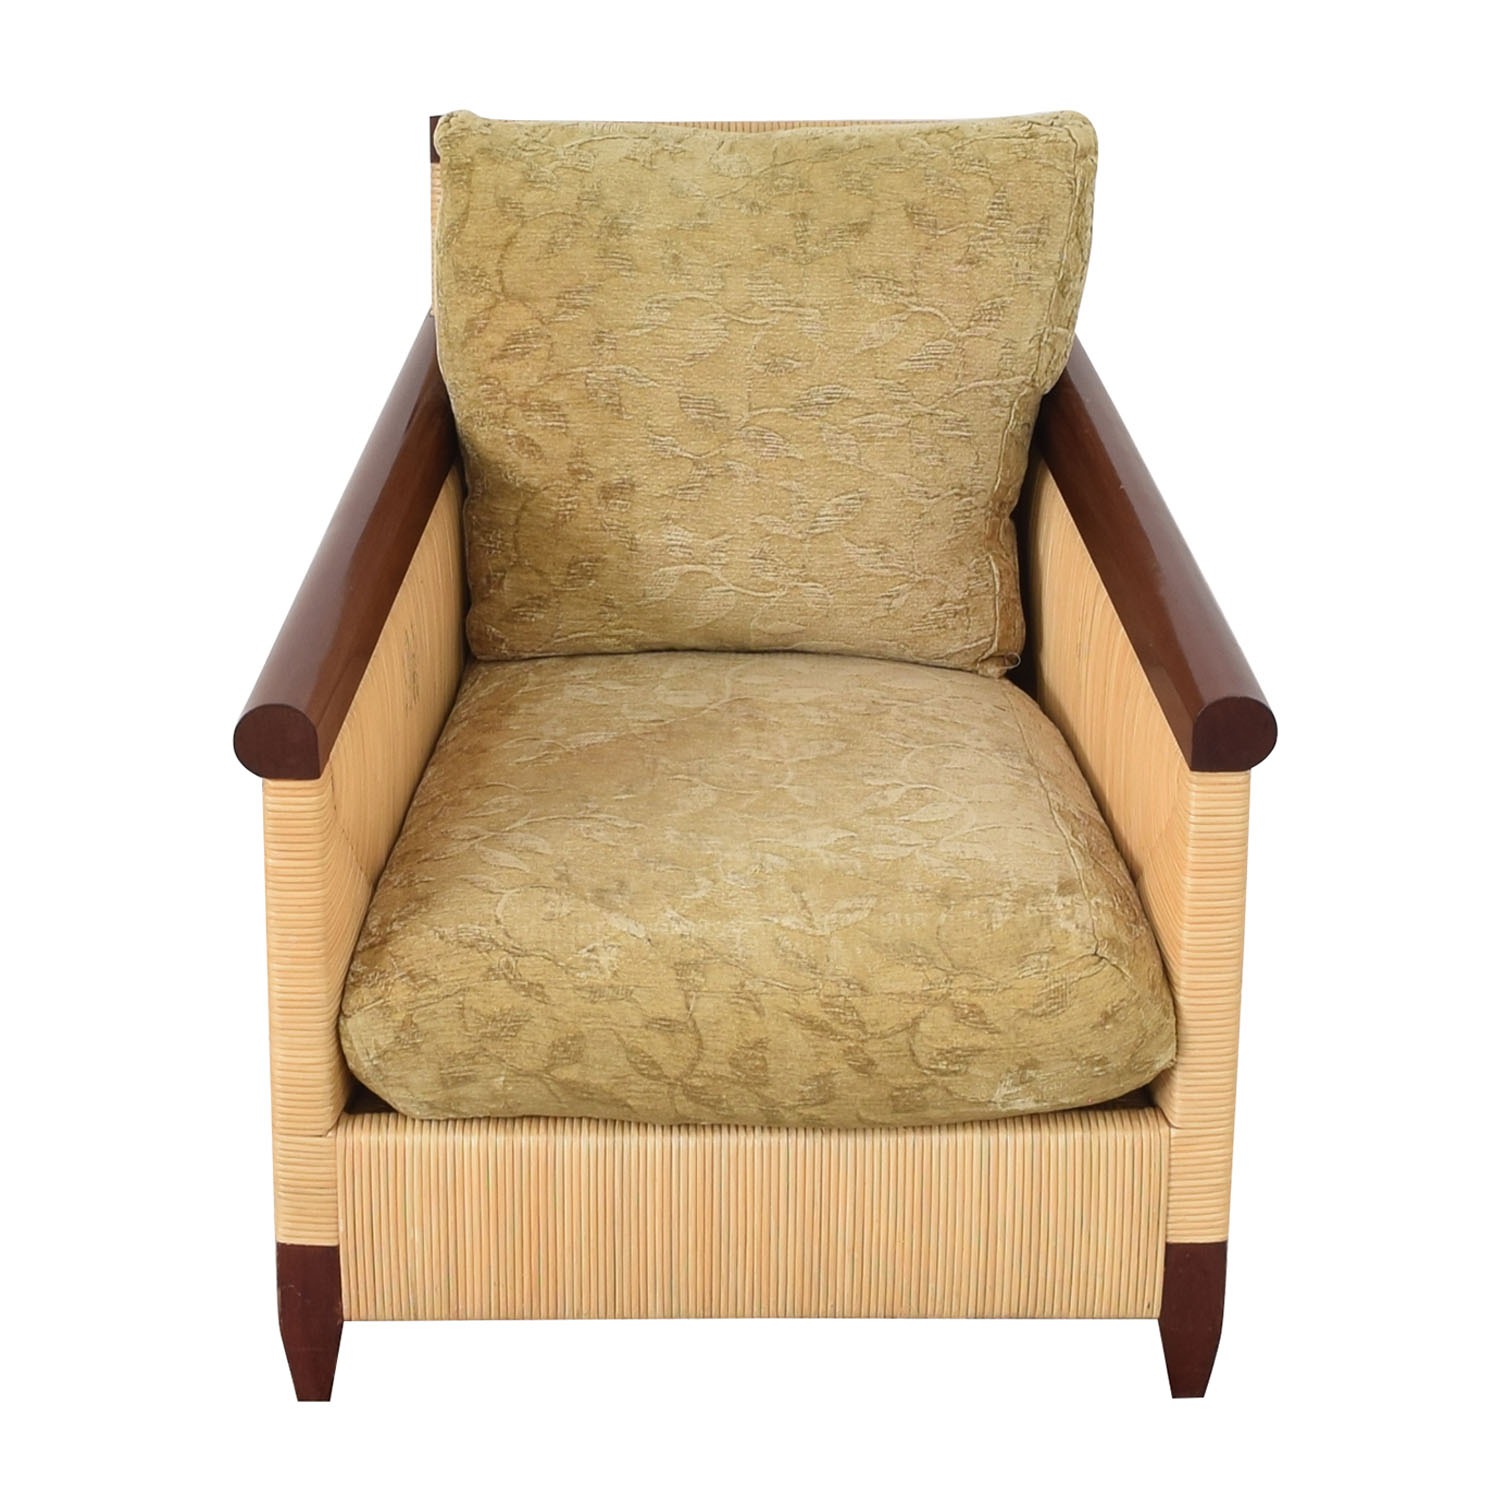 Donghia Donghia by John Hutton Mahogany and Wicker Lounger light and dark brown